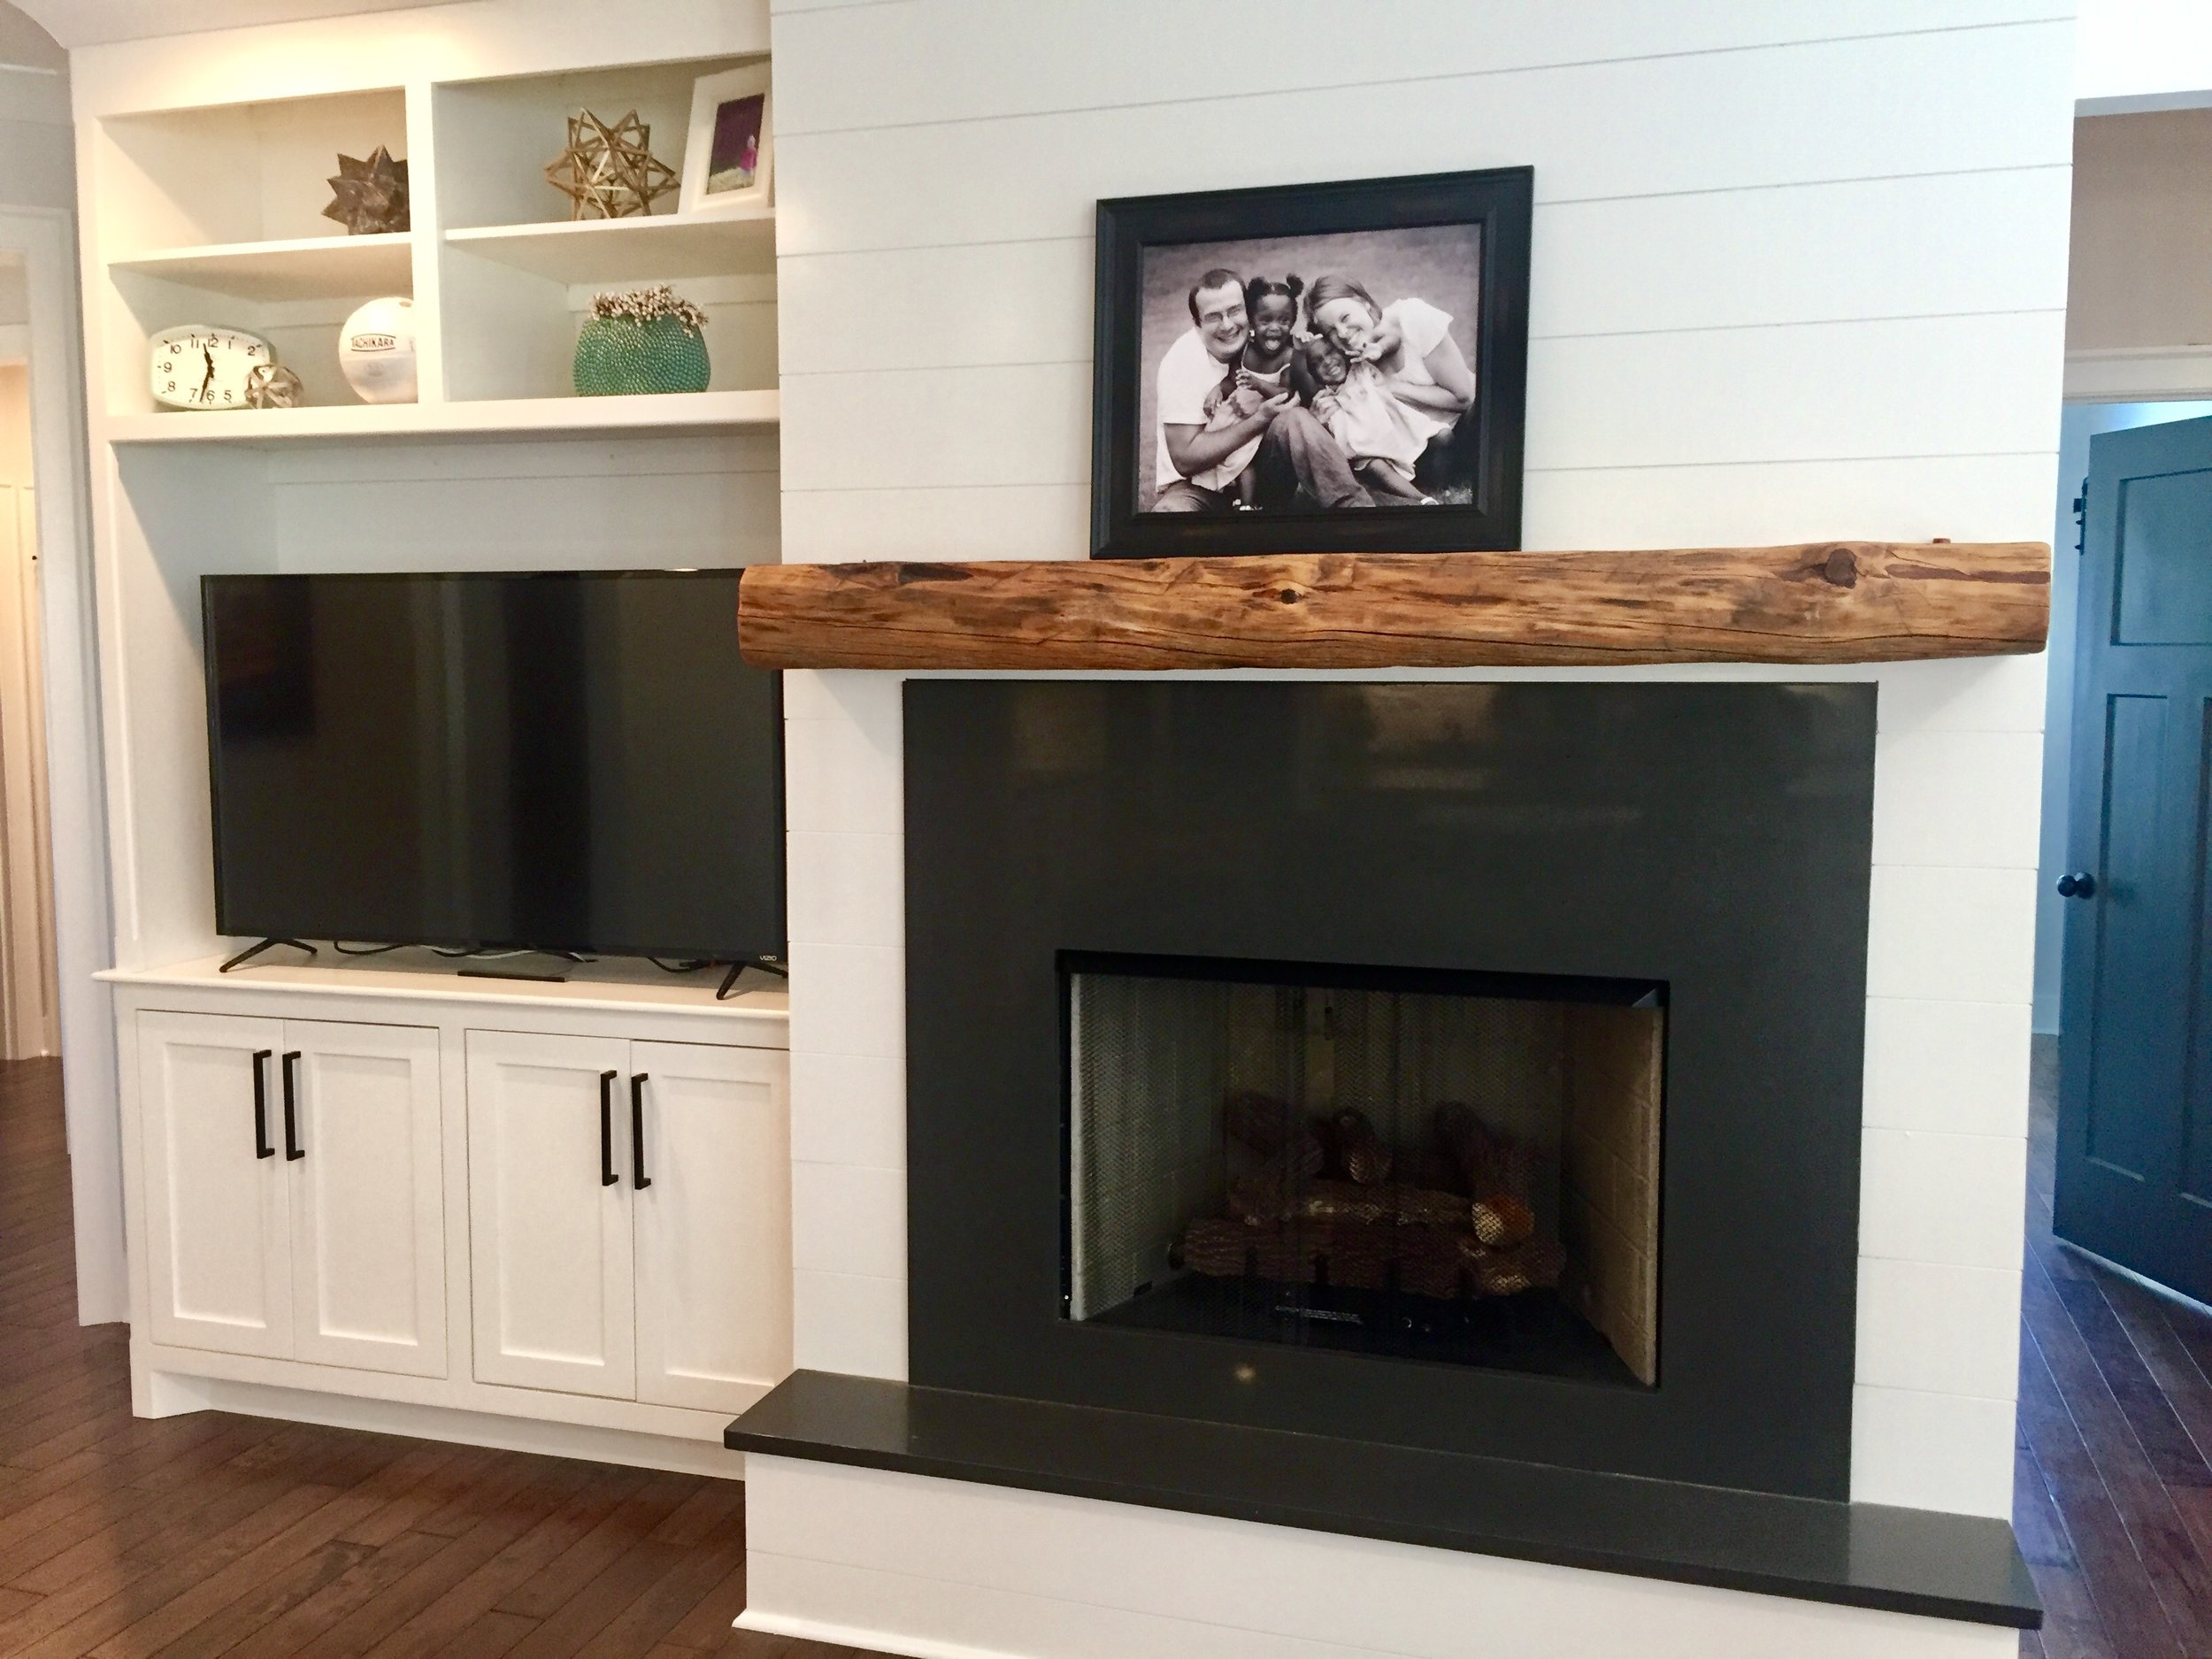 Built-in and mantel